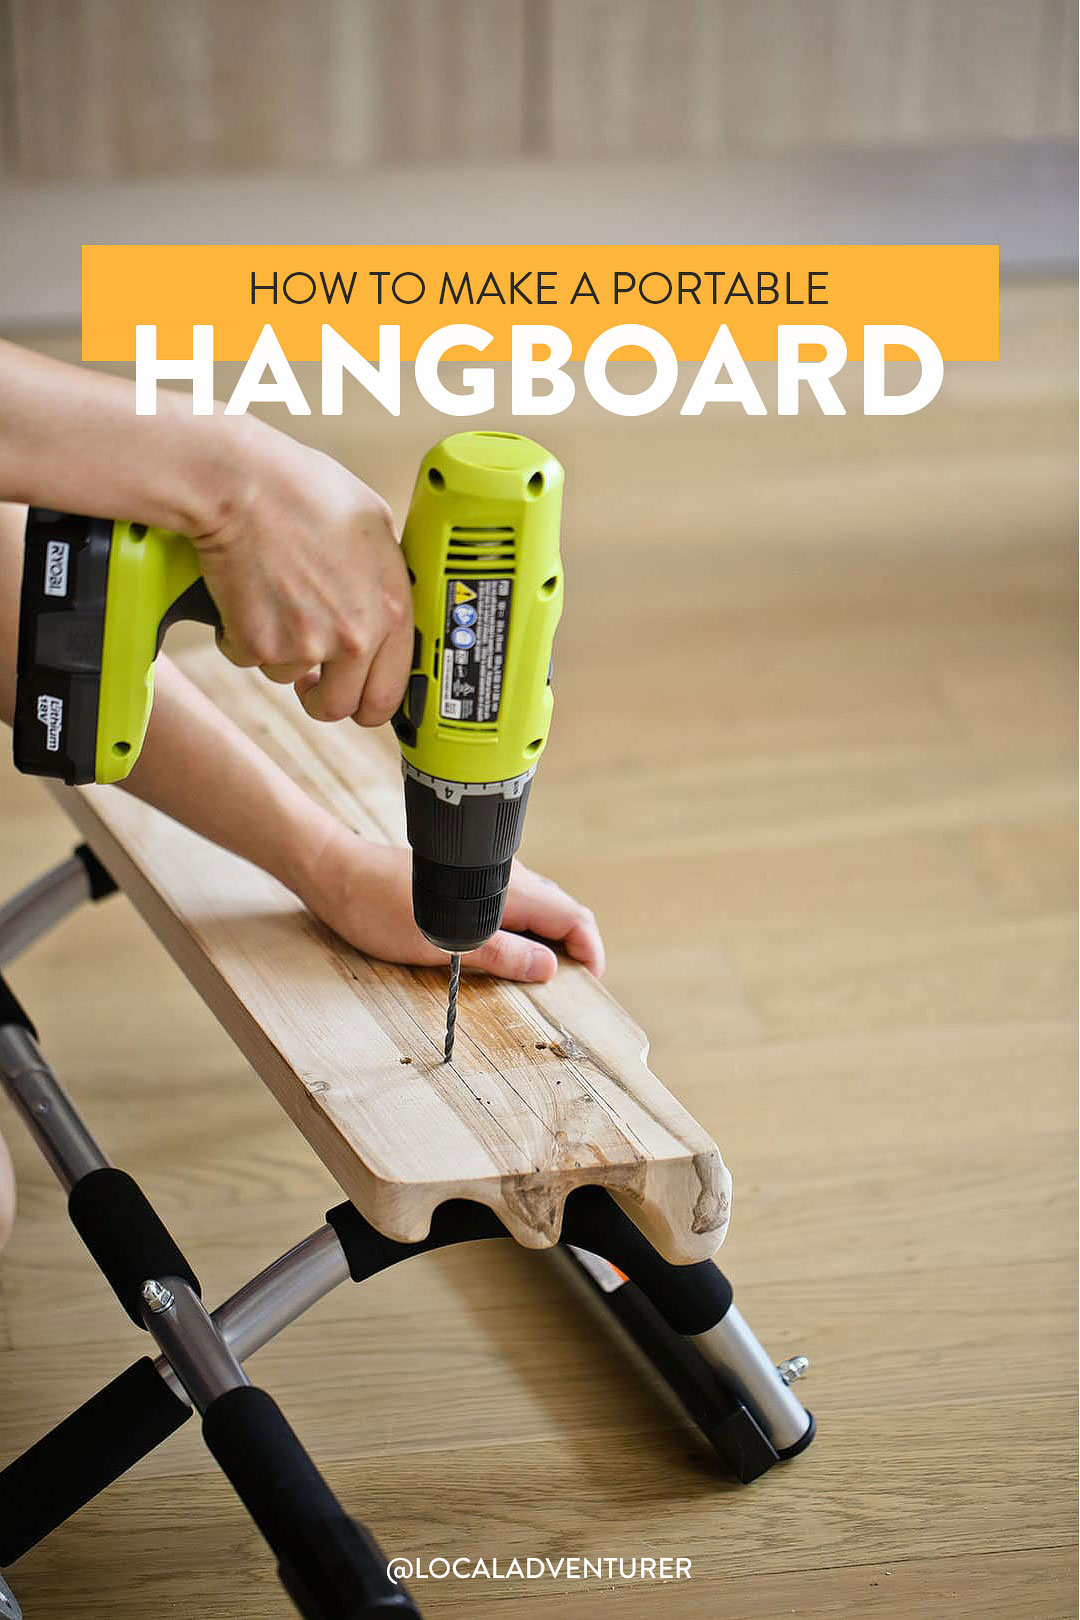 How to Make a Portable Hangboard DIY